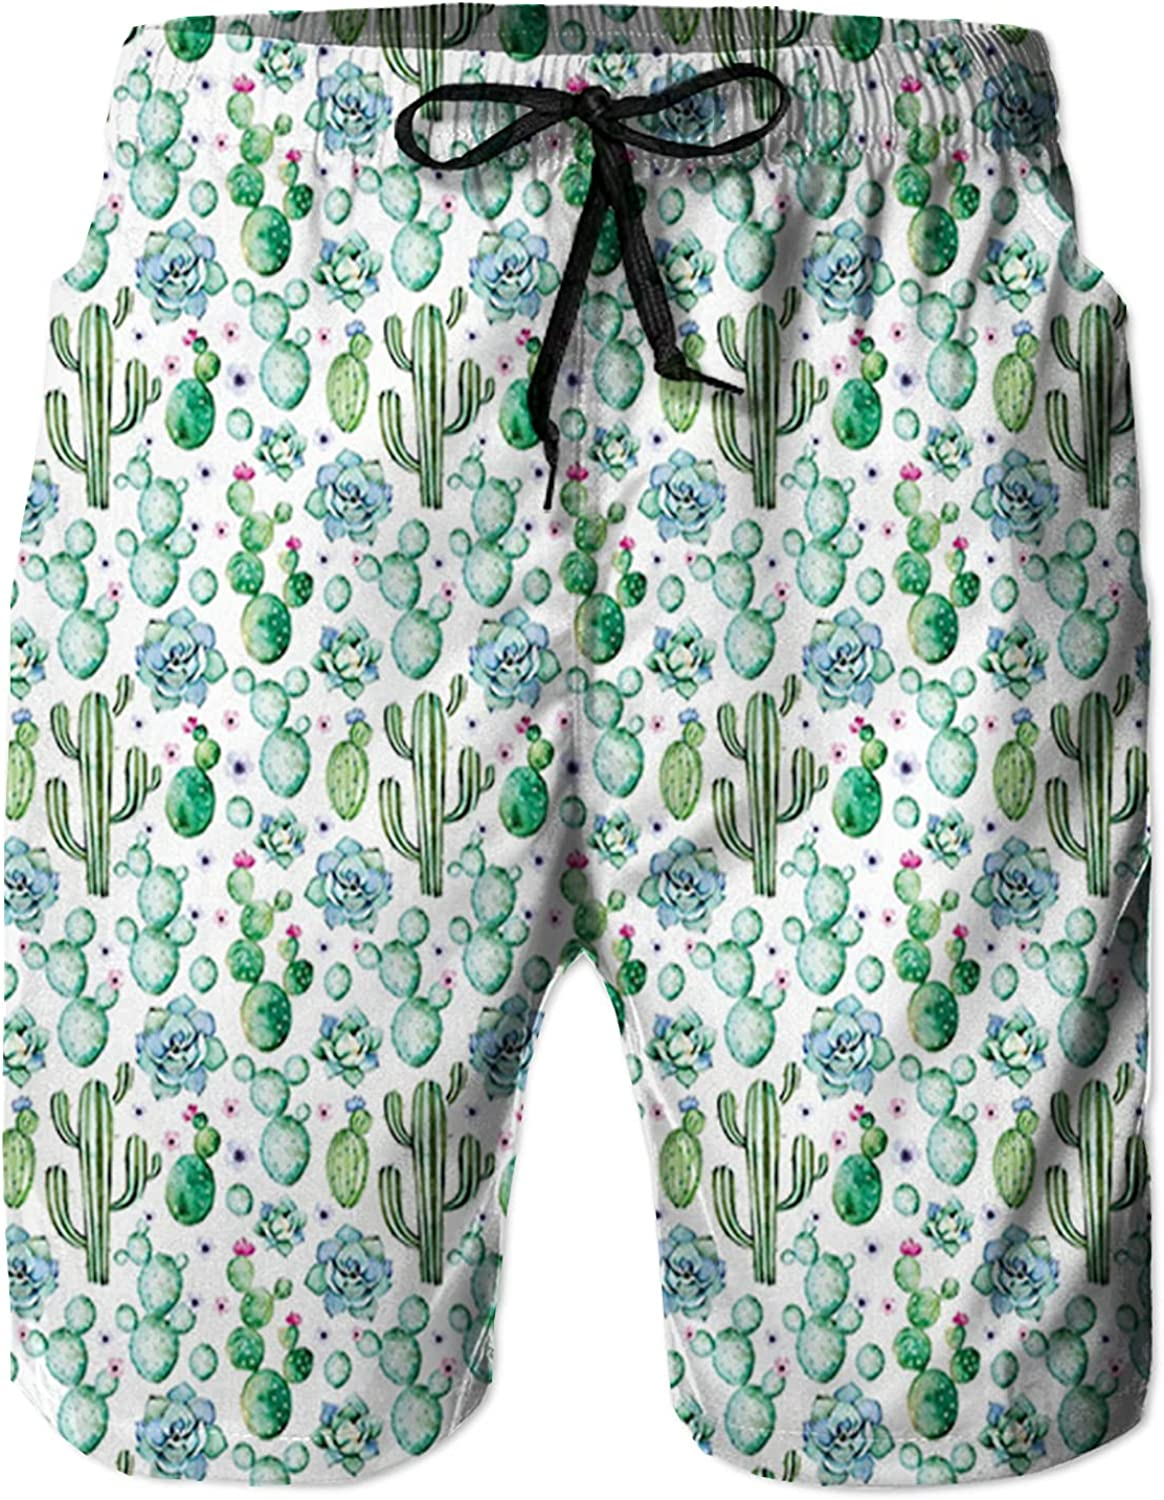 NC Men's Swim Trunks Quick Dry Beach Board Shorts Drawstring Lightweight with Elastic Waist and Pockets,Hand Painted Exotic Plant Saguaro Prickly Pear Succulents Spikes Arrangement M